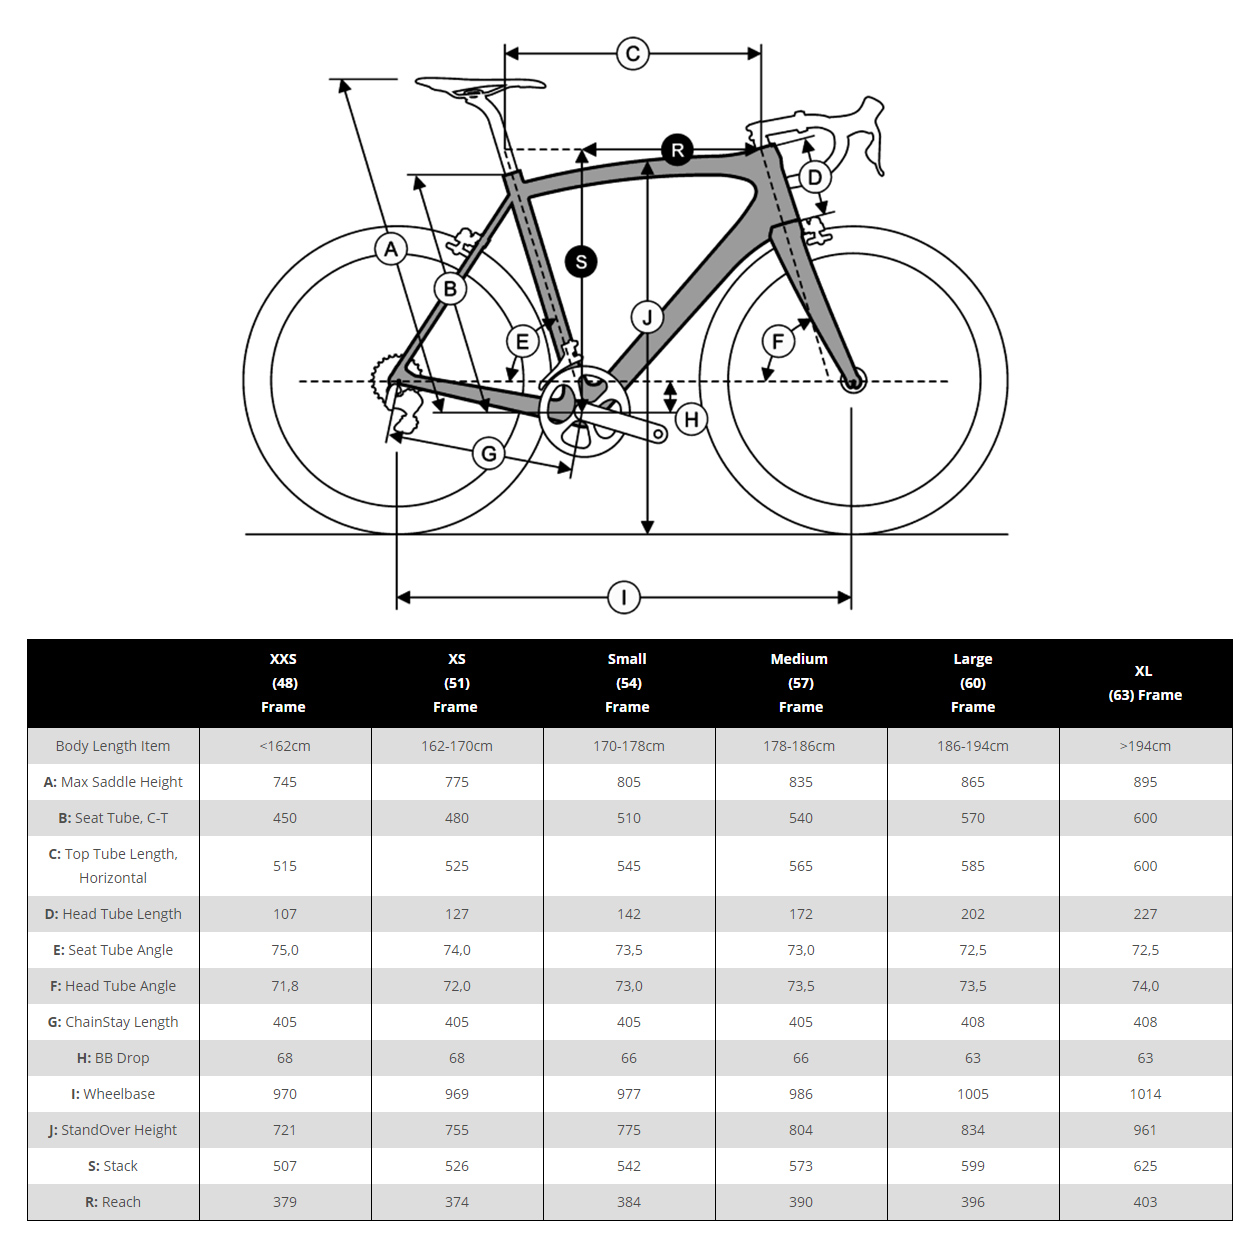 Merlin Nitro Sl Carbon Road Bike 2018 Cycles Bicycle Frame Diagram The Of Is These Sizes Are A Guideline Only If You Unsure Please Contact Our Customer Service Team For Assistance Sales